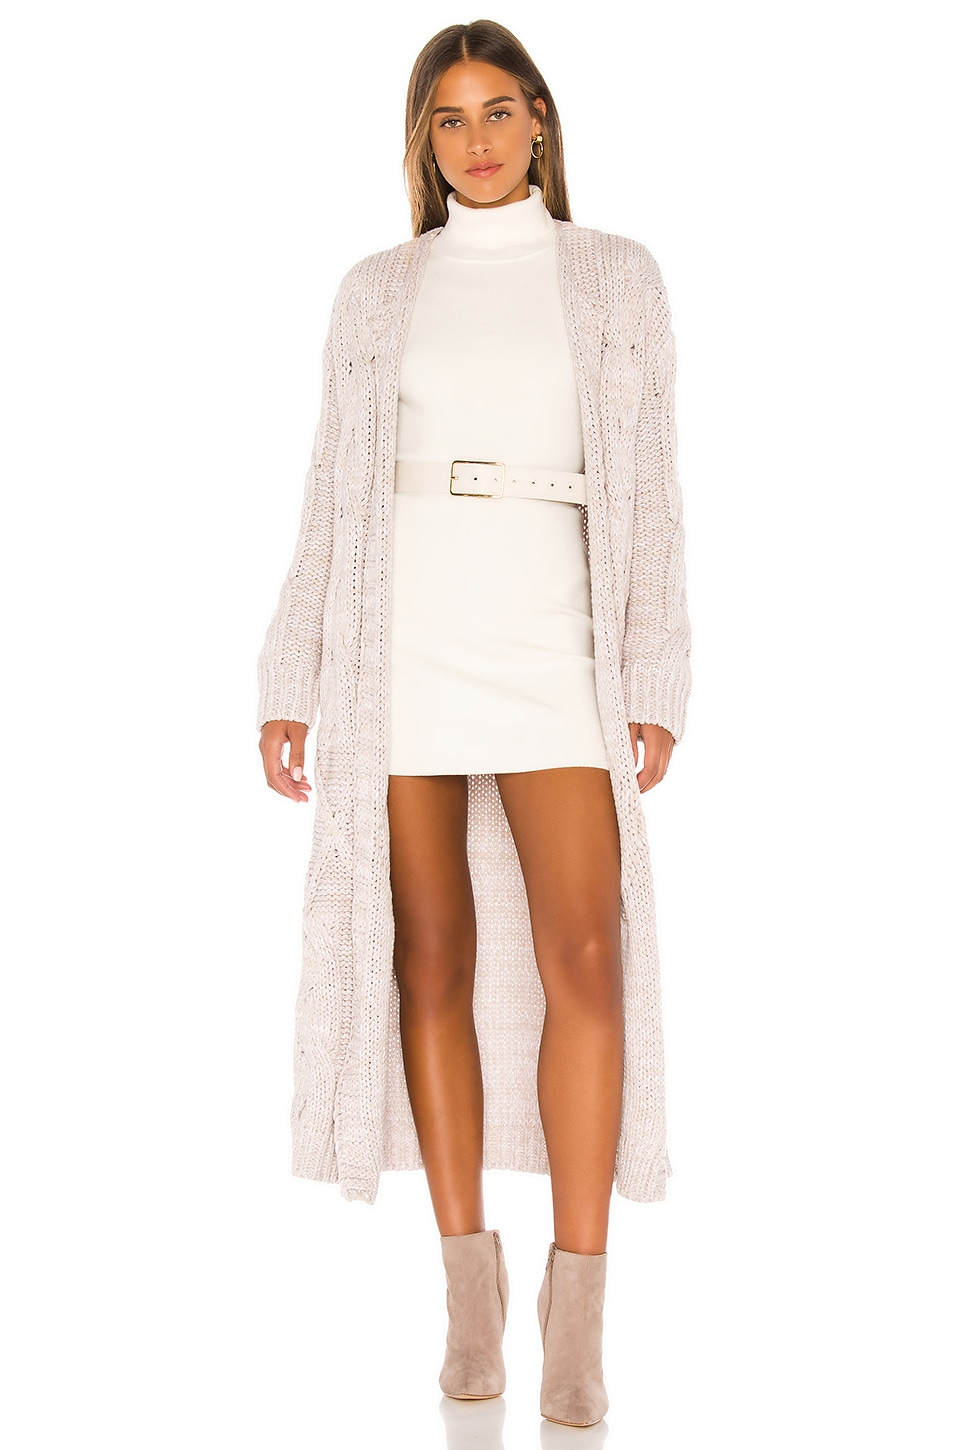 Free People Keep In Touch Cardigan in White